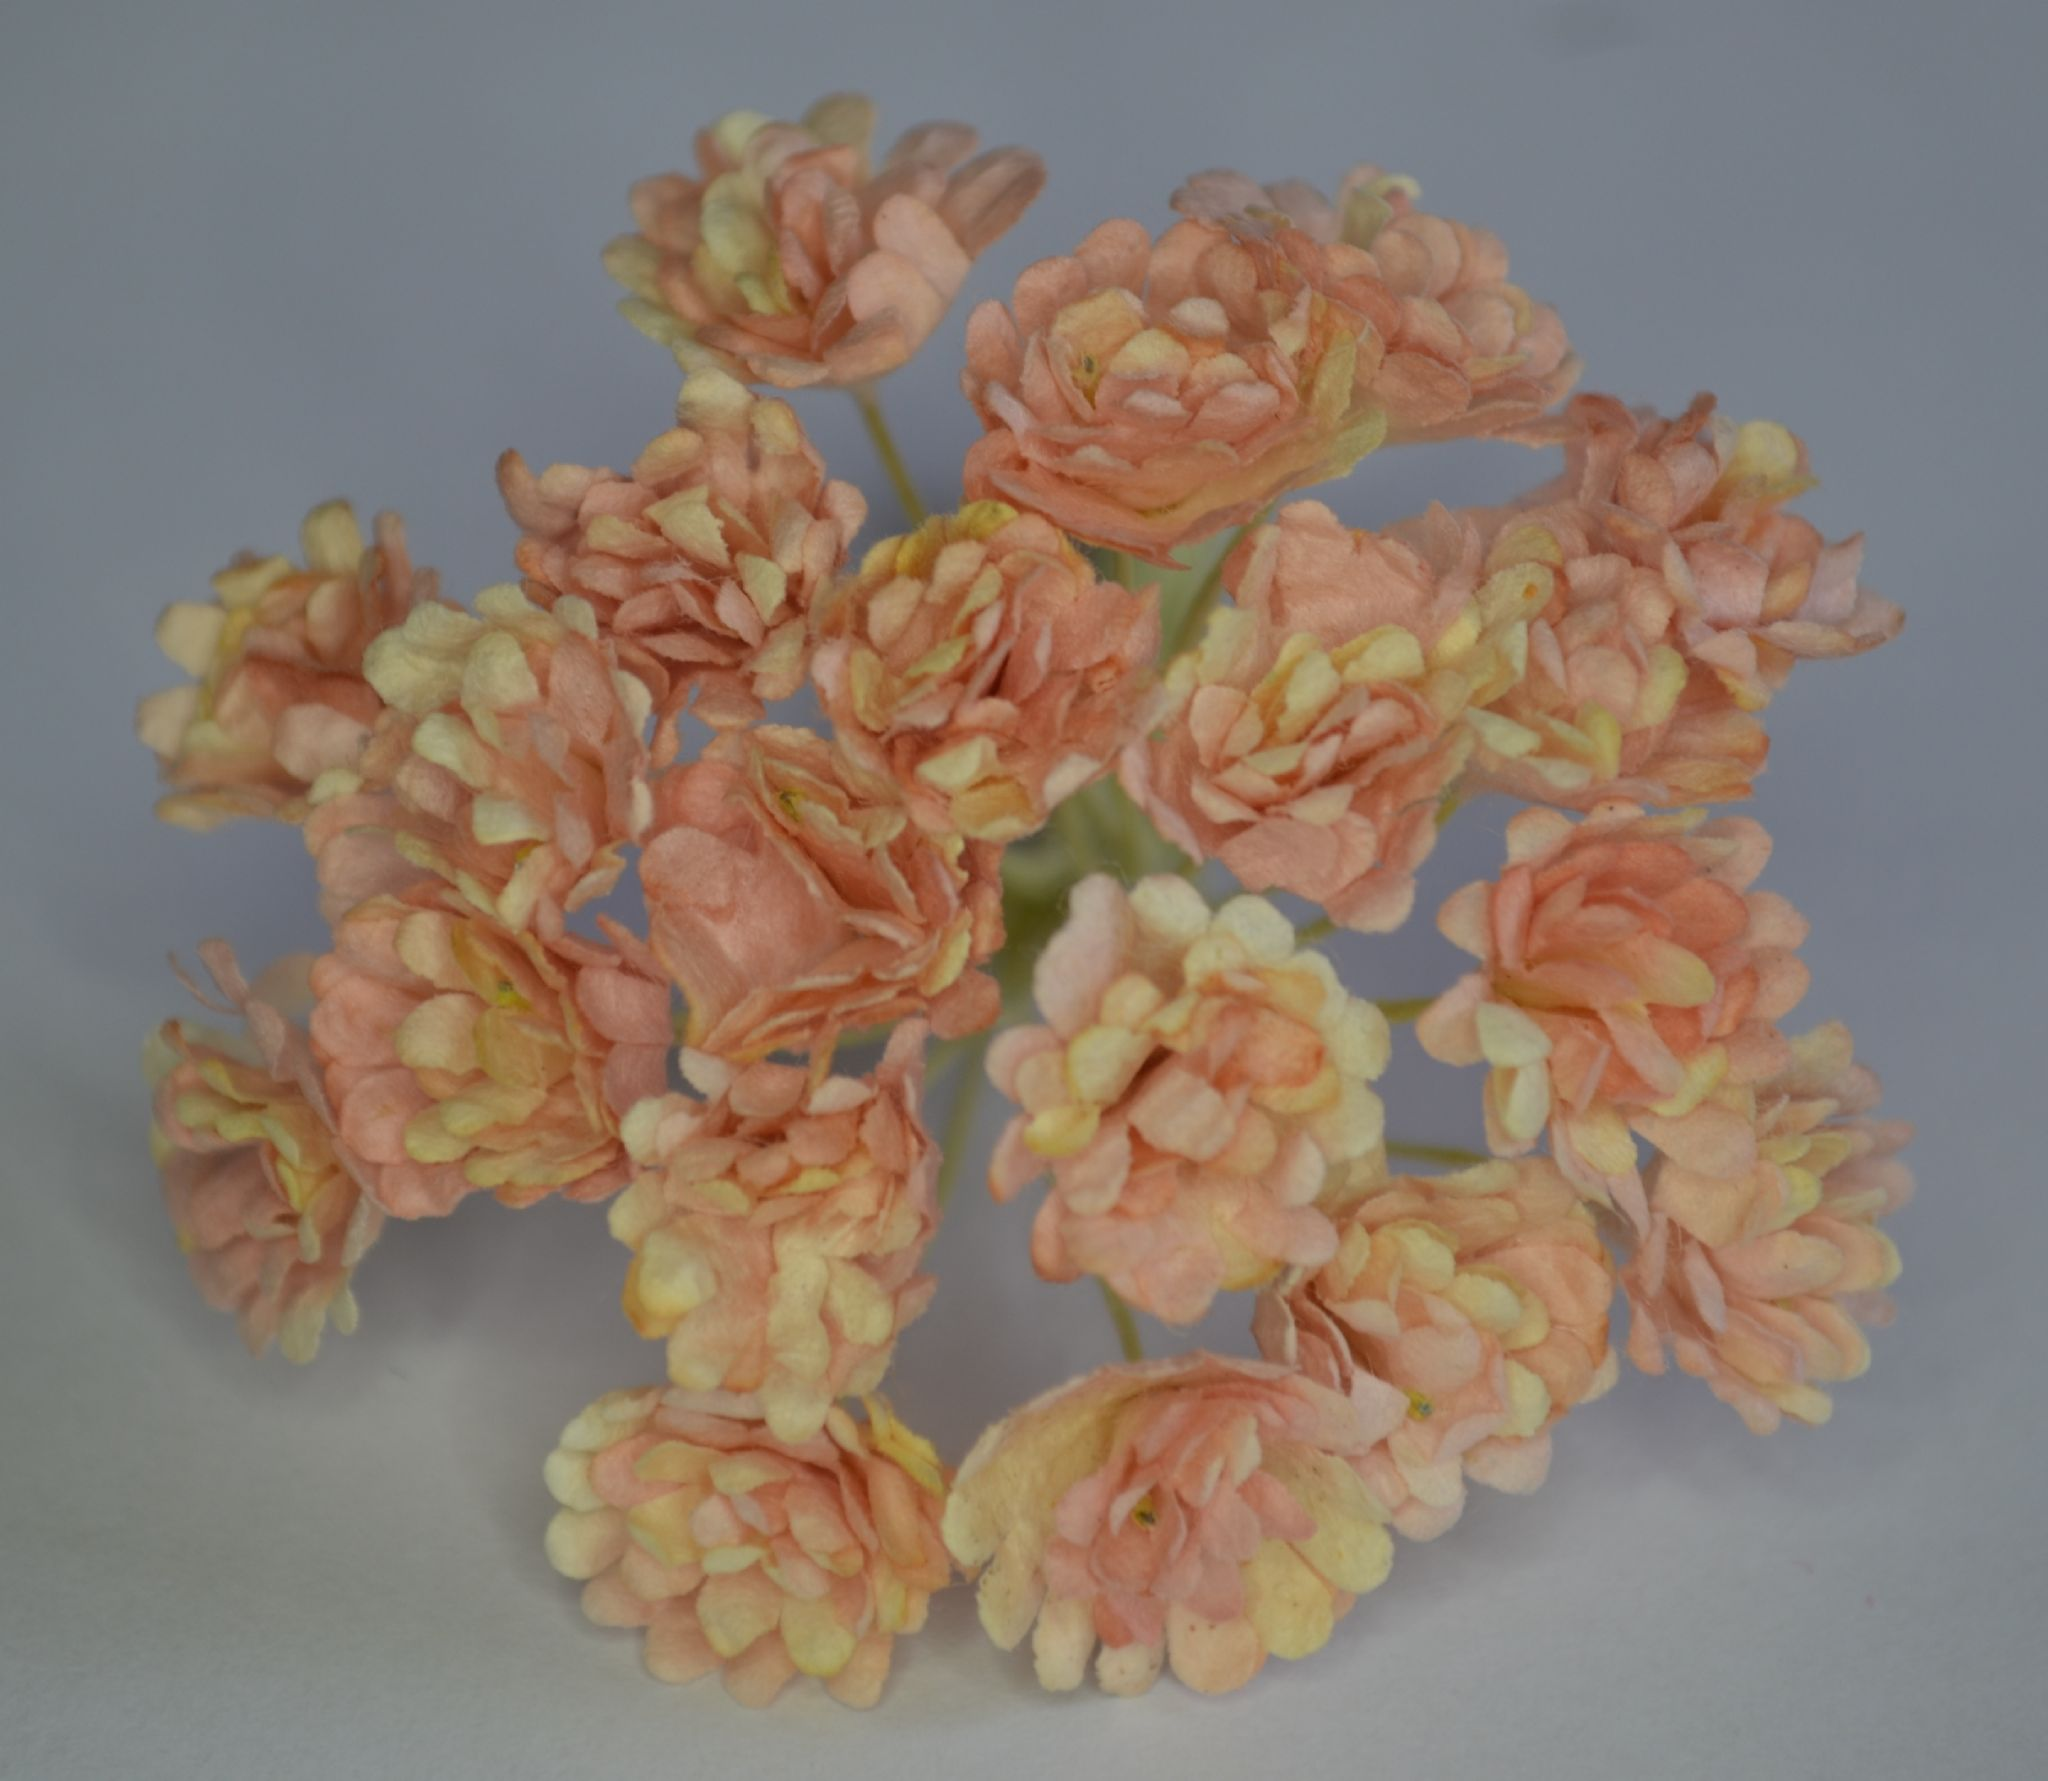 2 tone pale coral pink gypsophila forget me not mulberry paper flowers 2 tone pale coral pink gypsophila forget me not mulberry paper flowers mightylinksfo